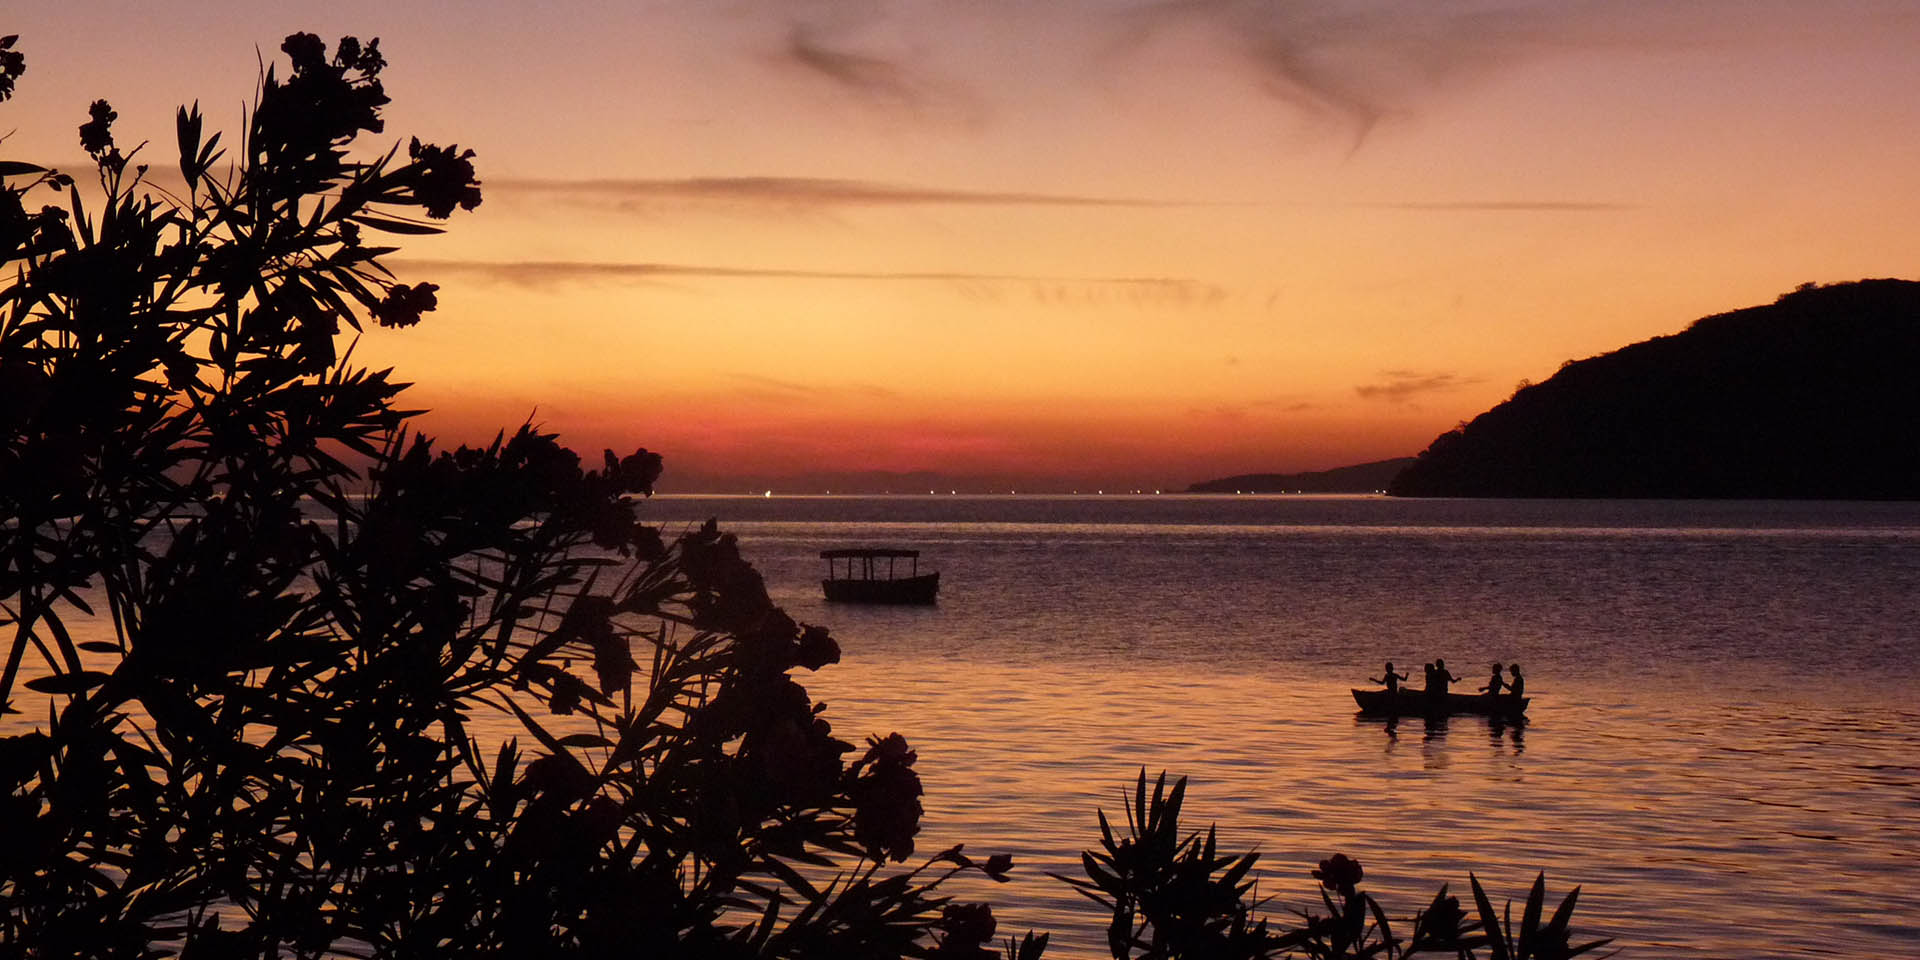 before you go malawian-style-malawi-adventures-experiences-holidays-specialist-tour-operator-cape-maclear-sunset-boat-trips